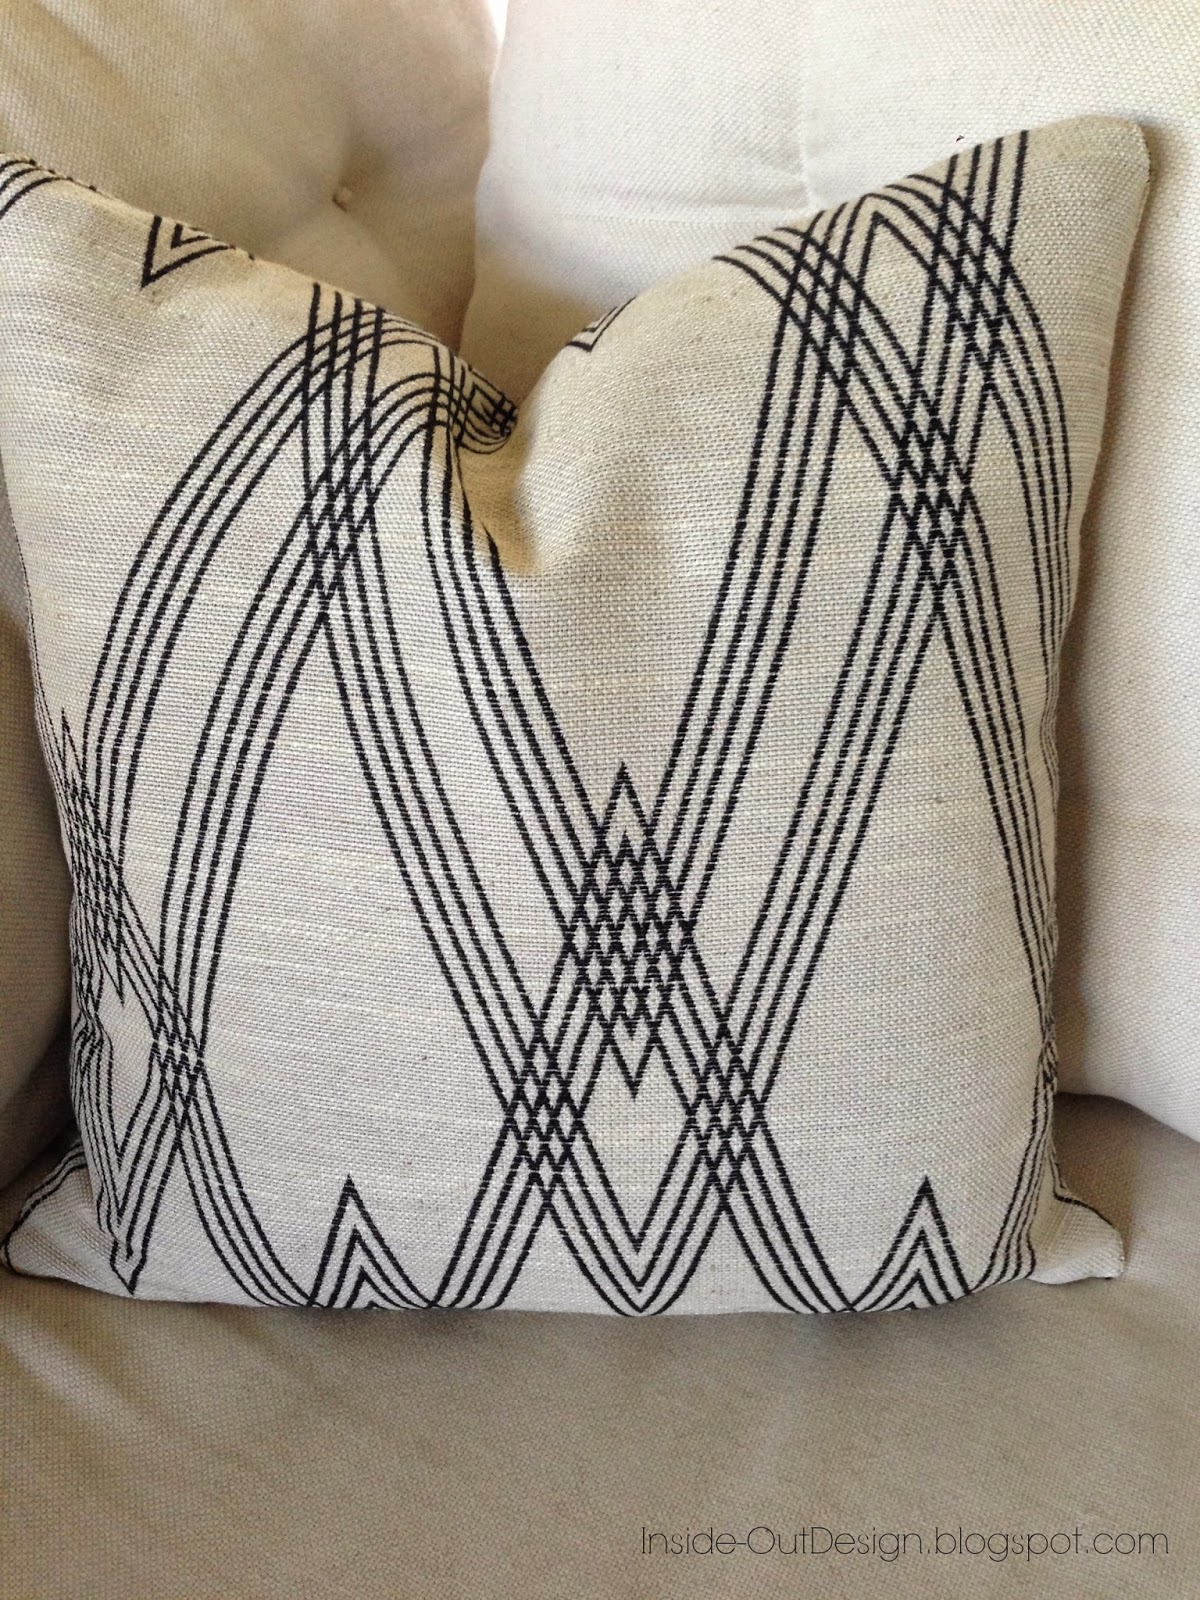 Inside out design a pillow cover made with nate berkus fabric for Insider design pillow